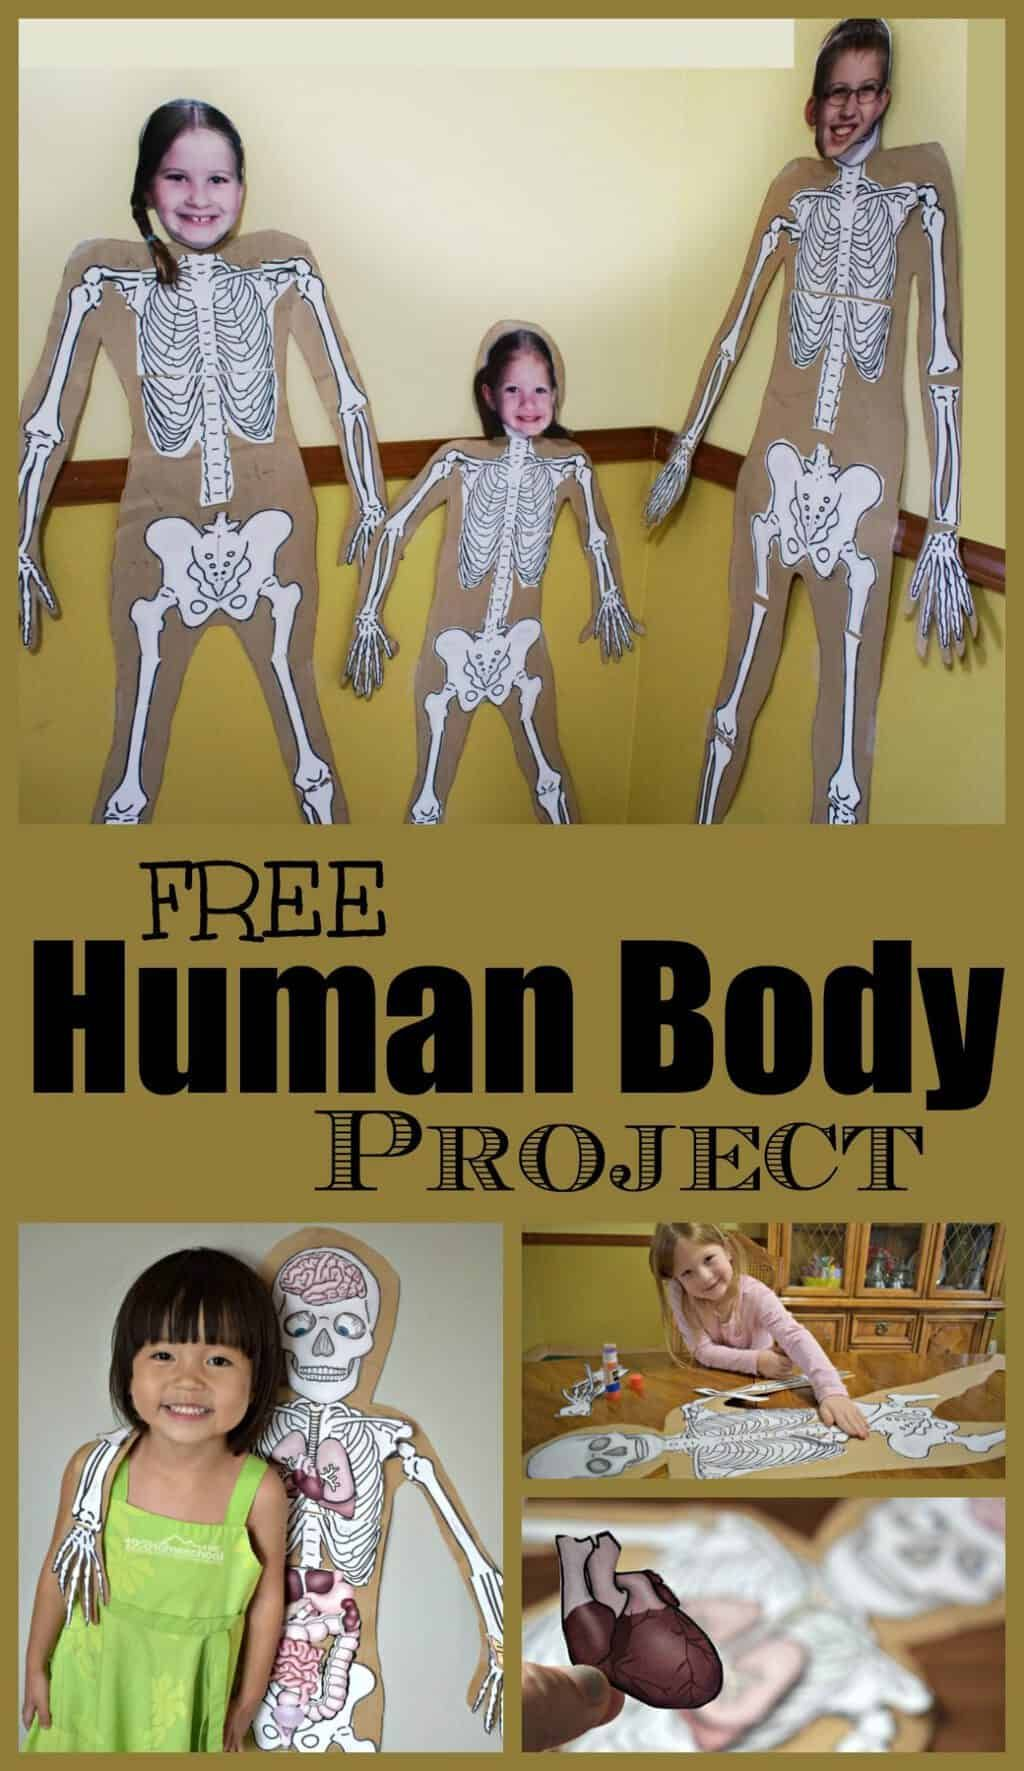 Free Human Body Project